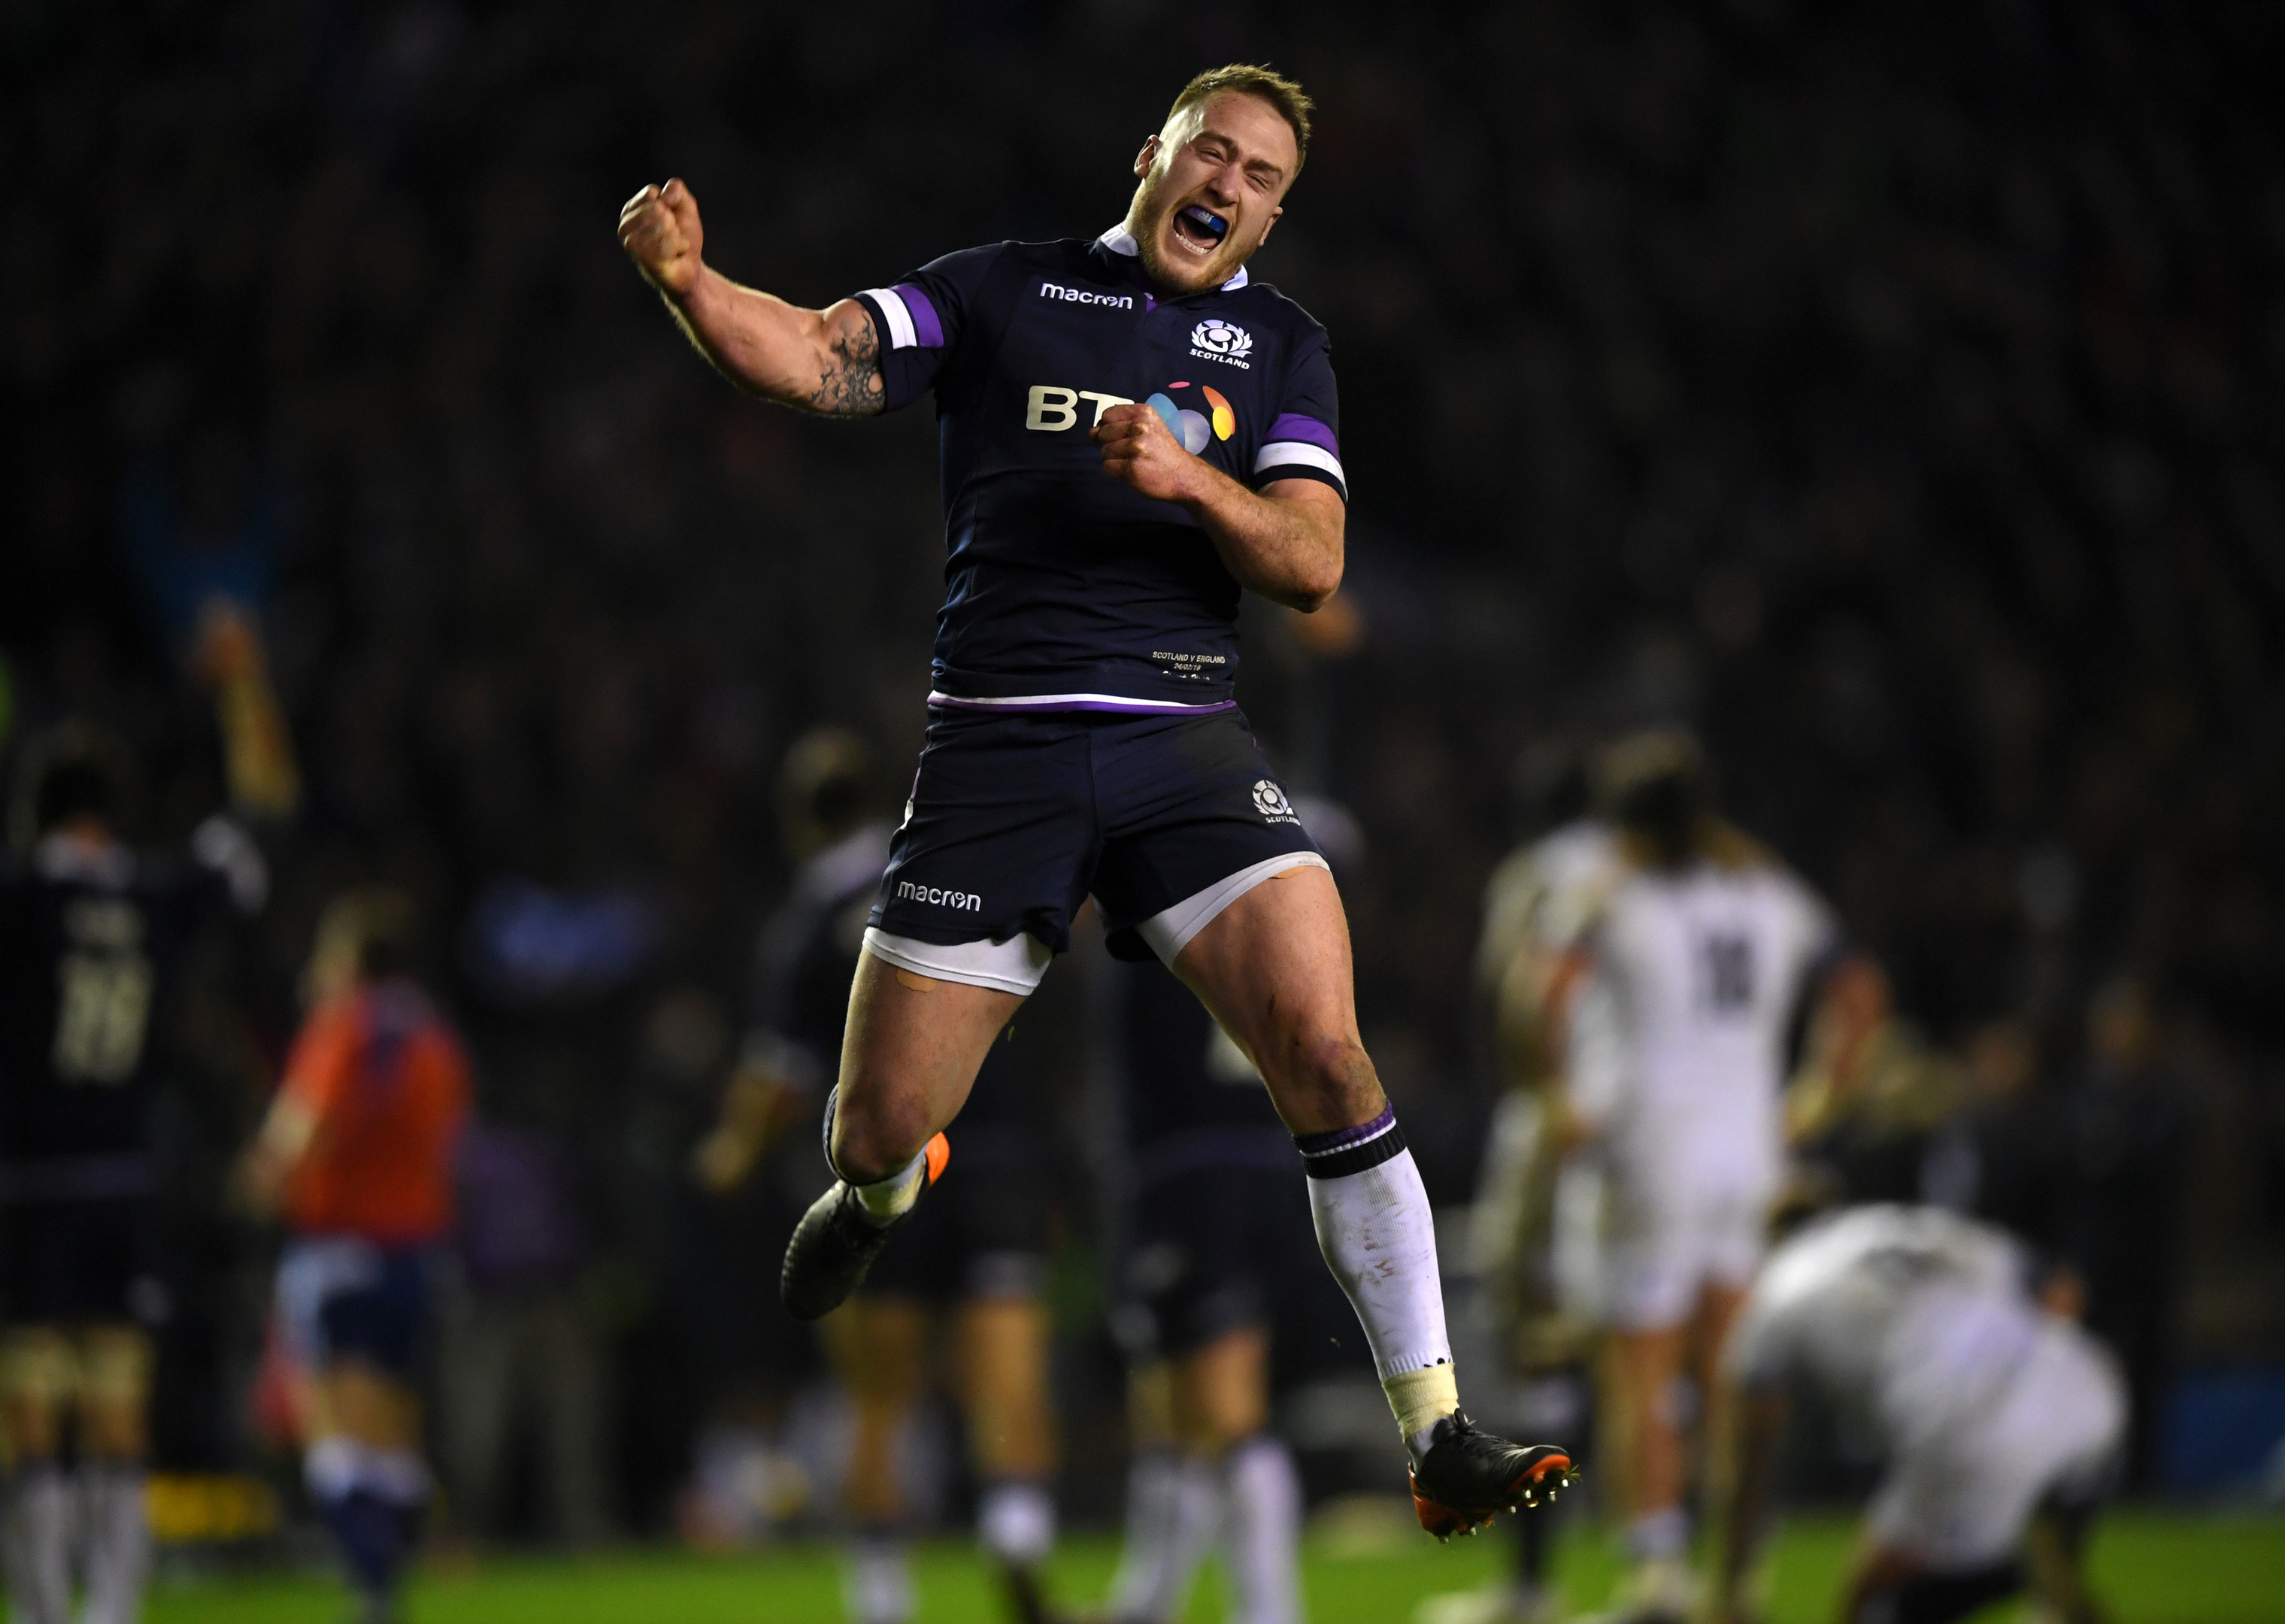 Stuart Hogg celebrates at the end of Scotland's Calcutta Cup victory.